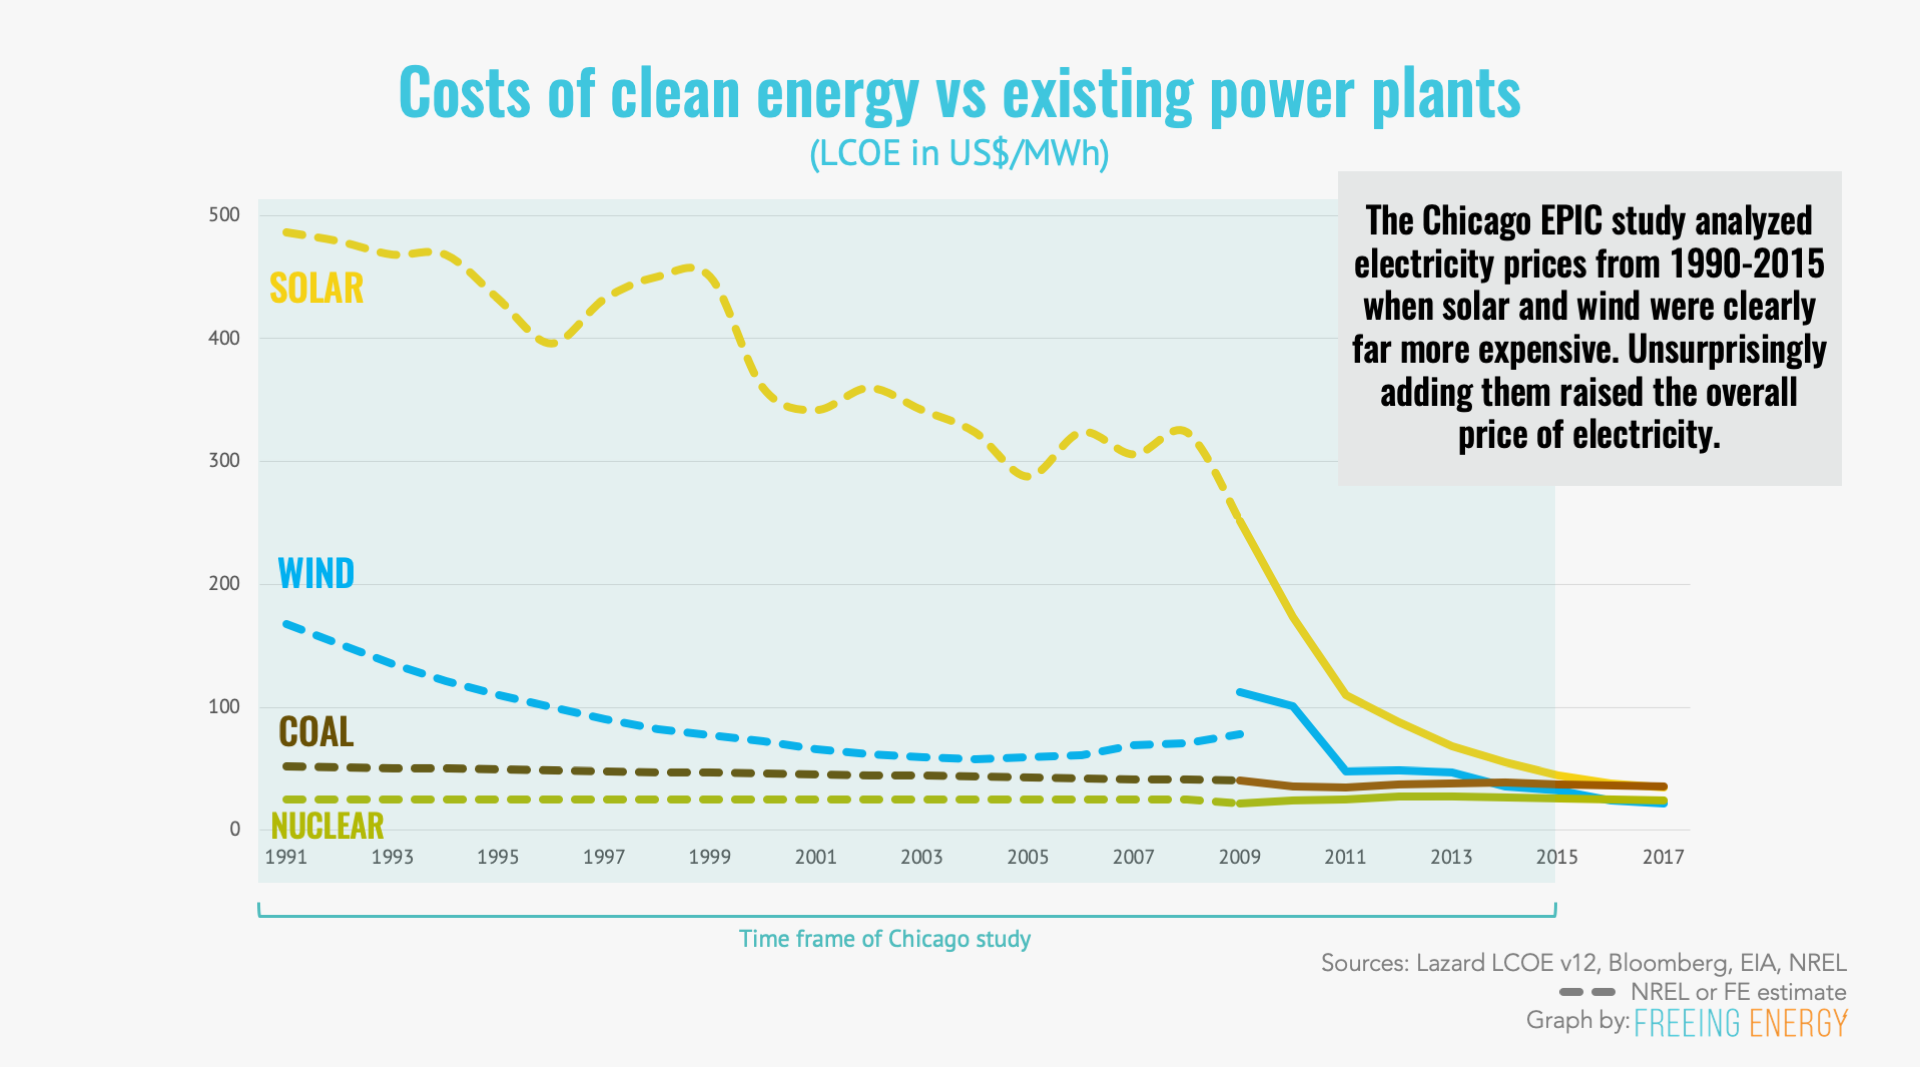 The Chicago EPIC study reviewed electricity prices from 1990-2015 and this graph shows that solar and wind were far more expensive during those years